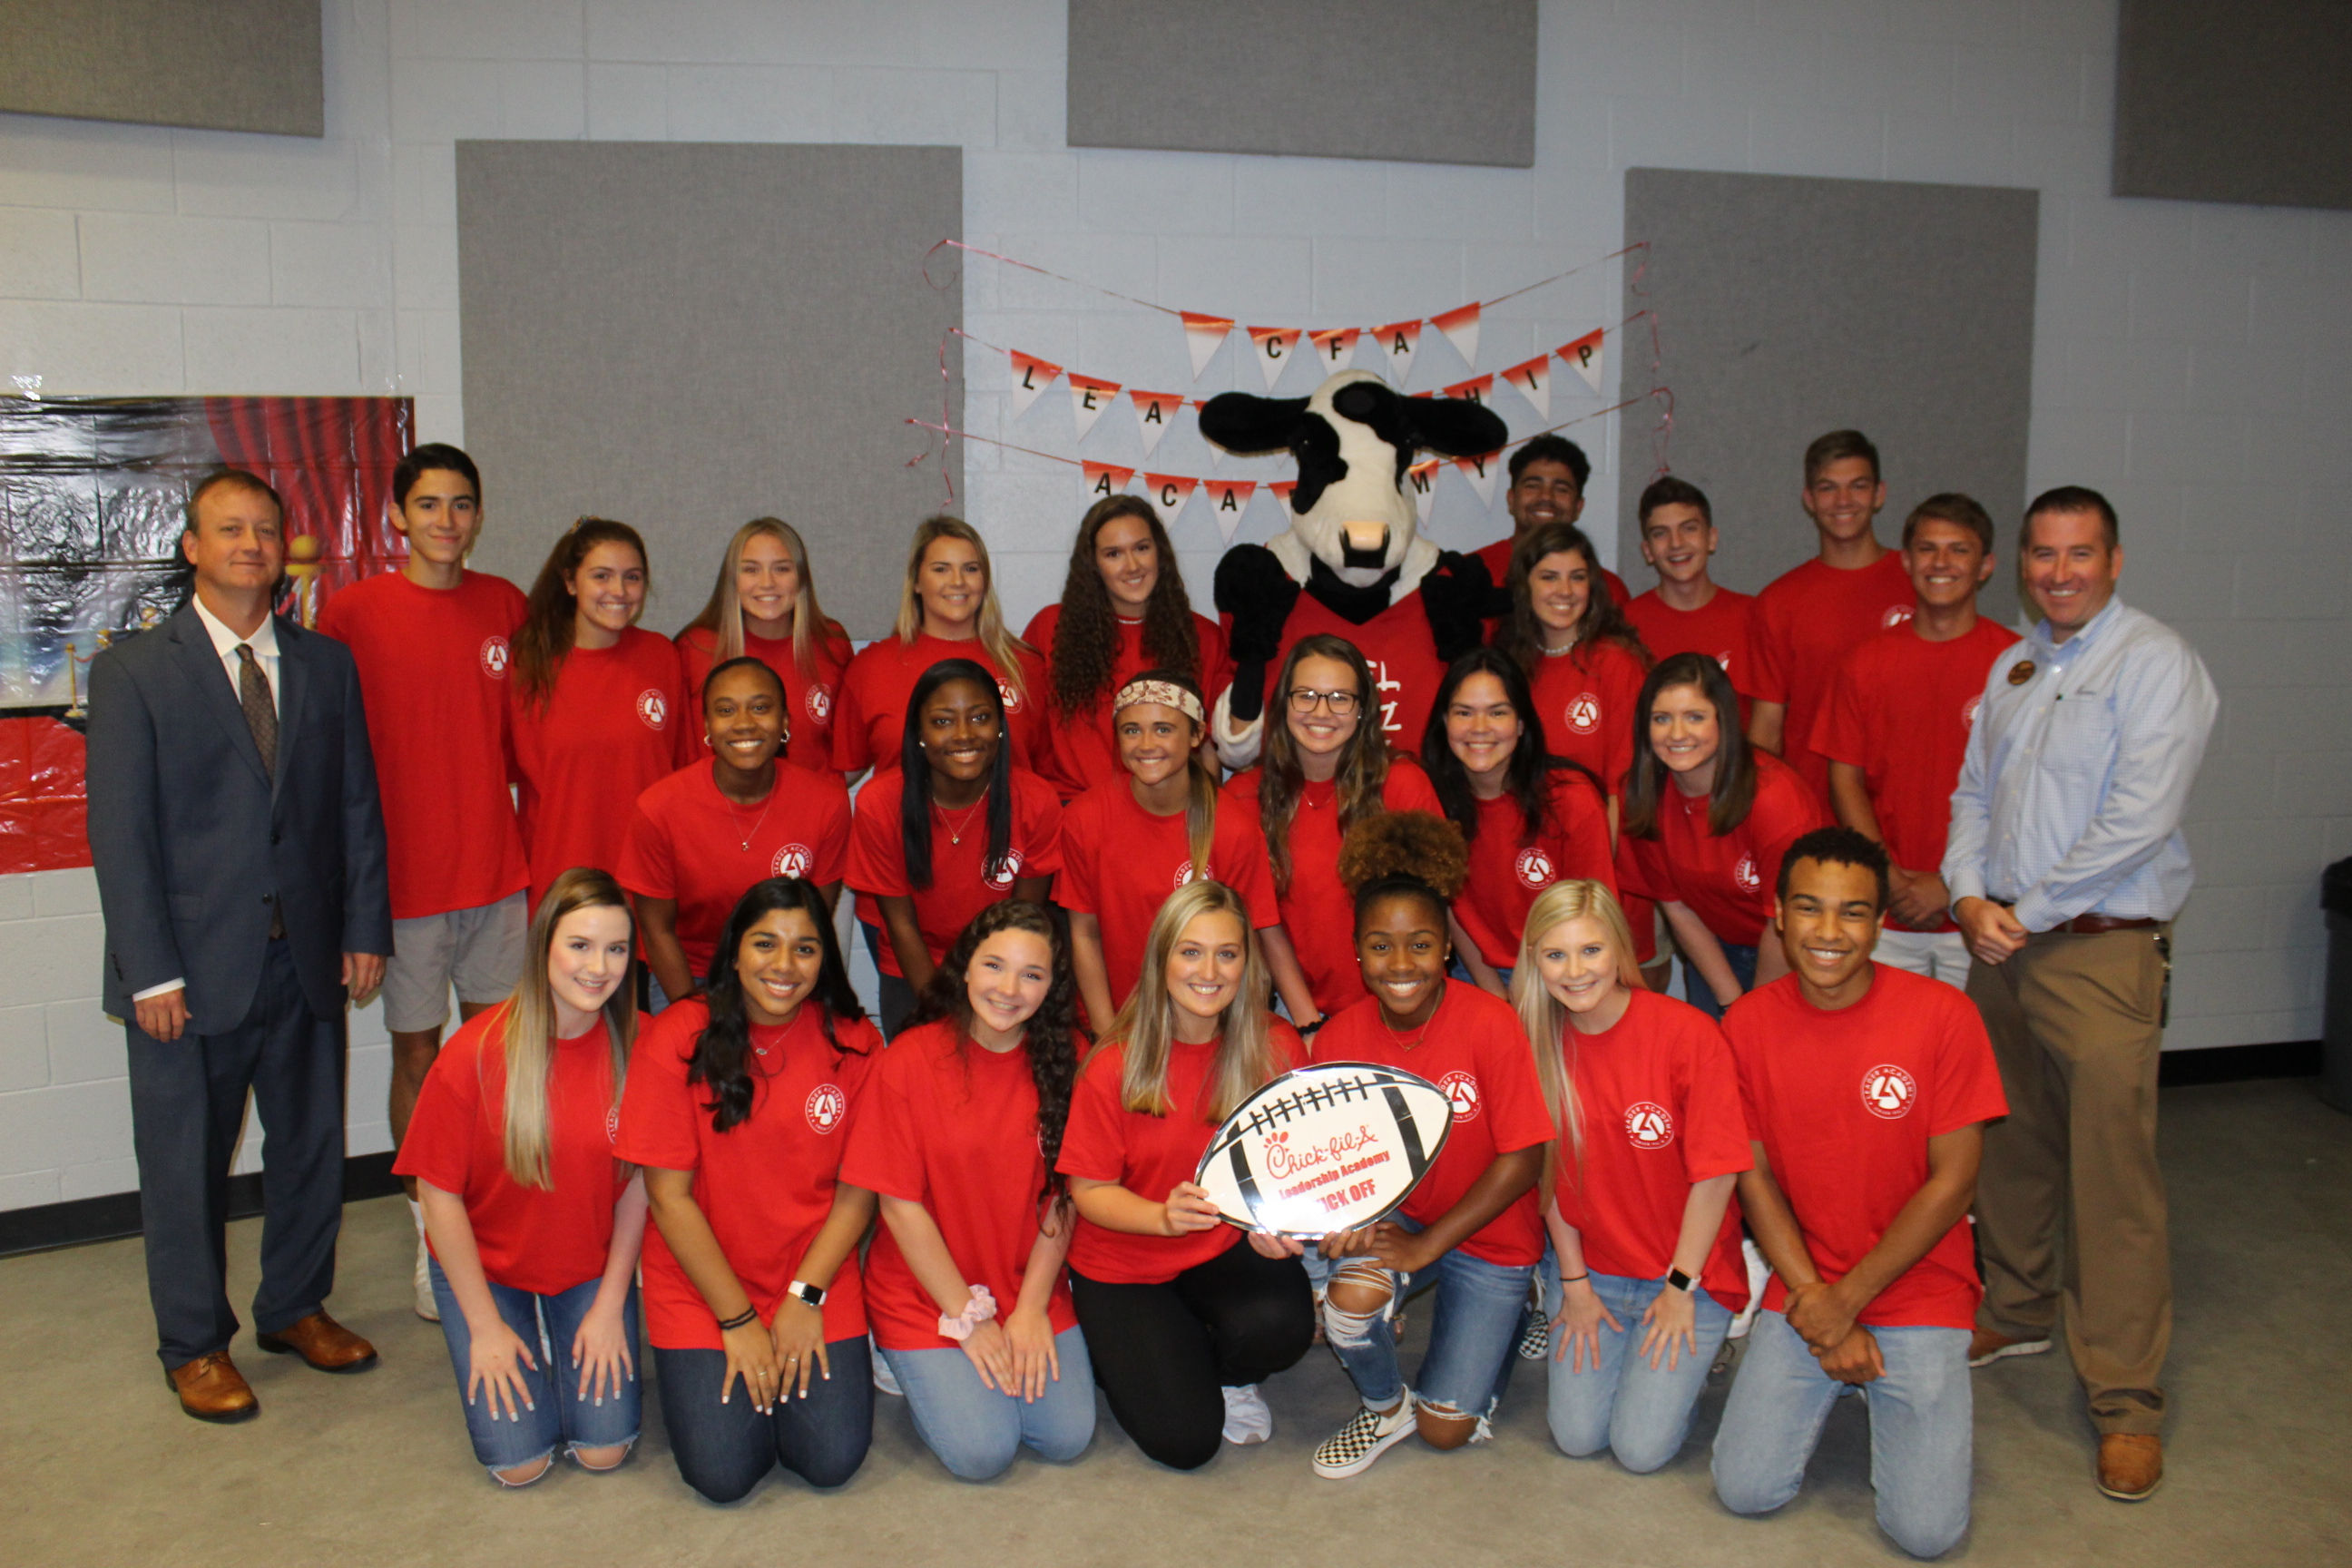 Chick-fil-A Leadership Academy at DeSoto Central High School